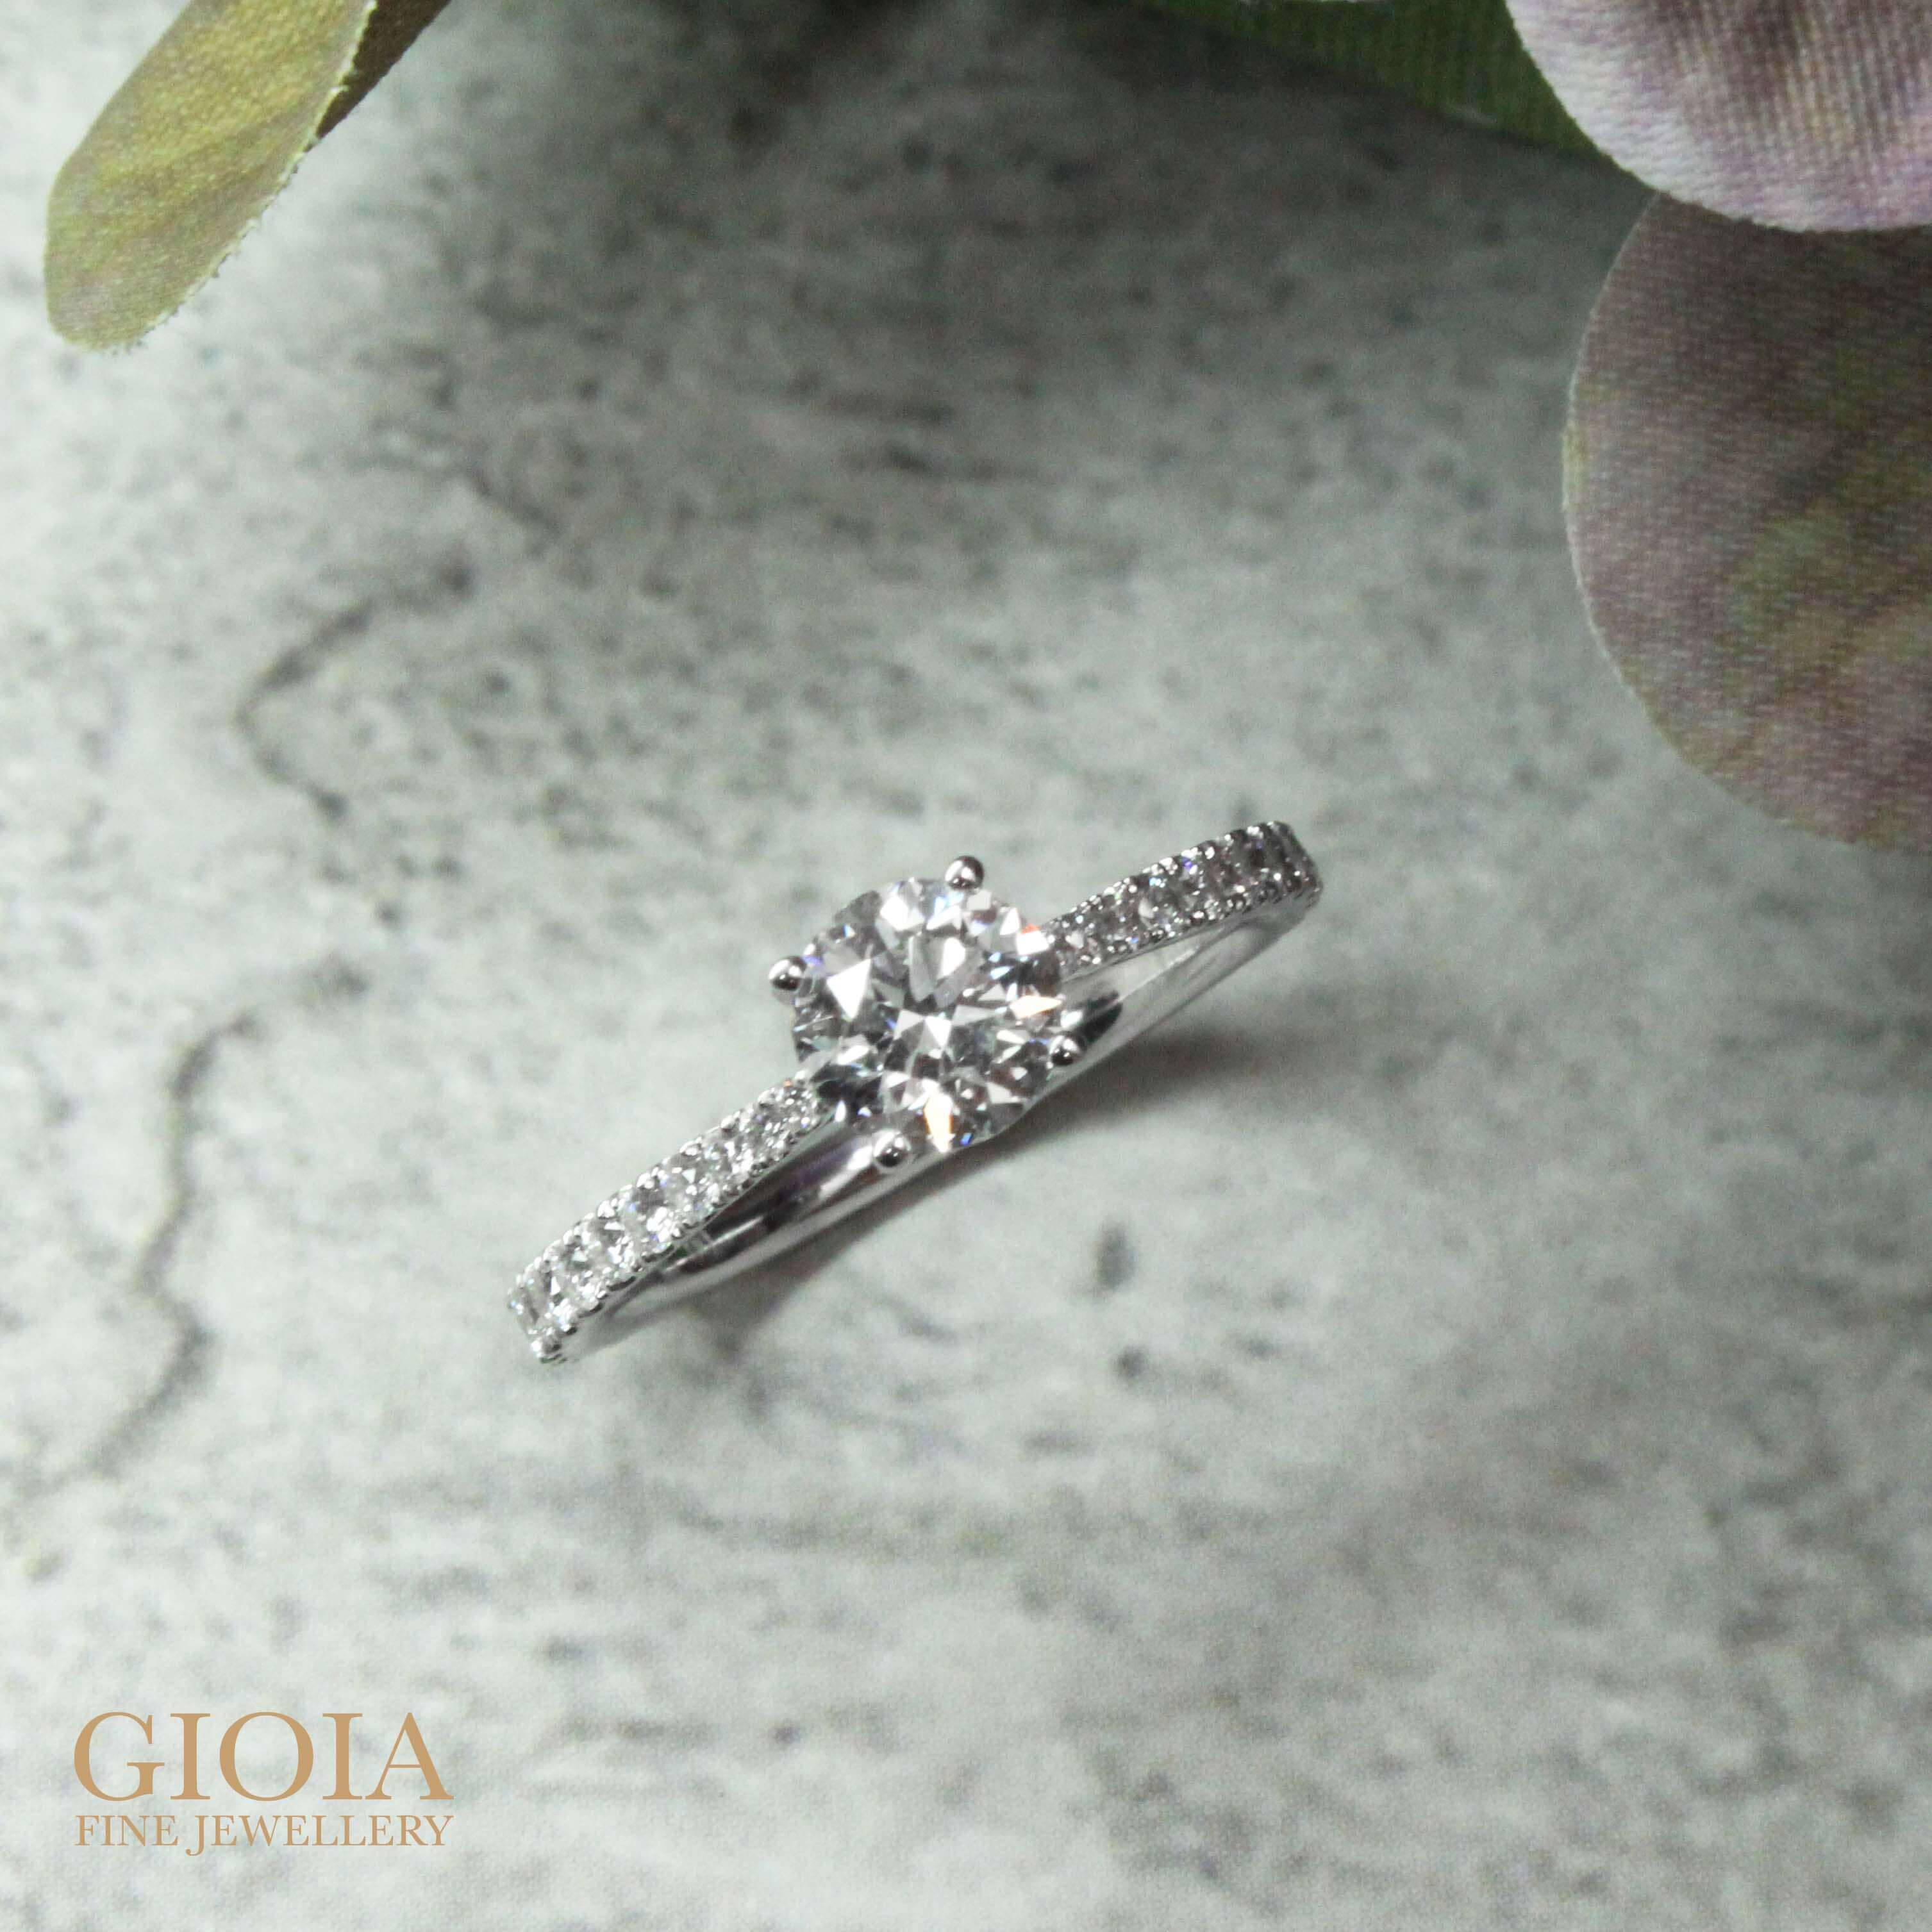 Diamond wedding proposal Ring - customised with round brilliant diamond and micro set with diamond setting on the tapered ring bands   Local Designer jewellery at GIOIA Fine Jewellery